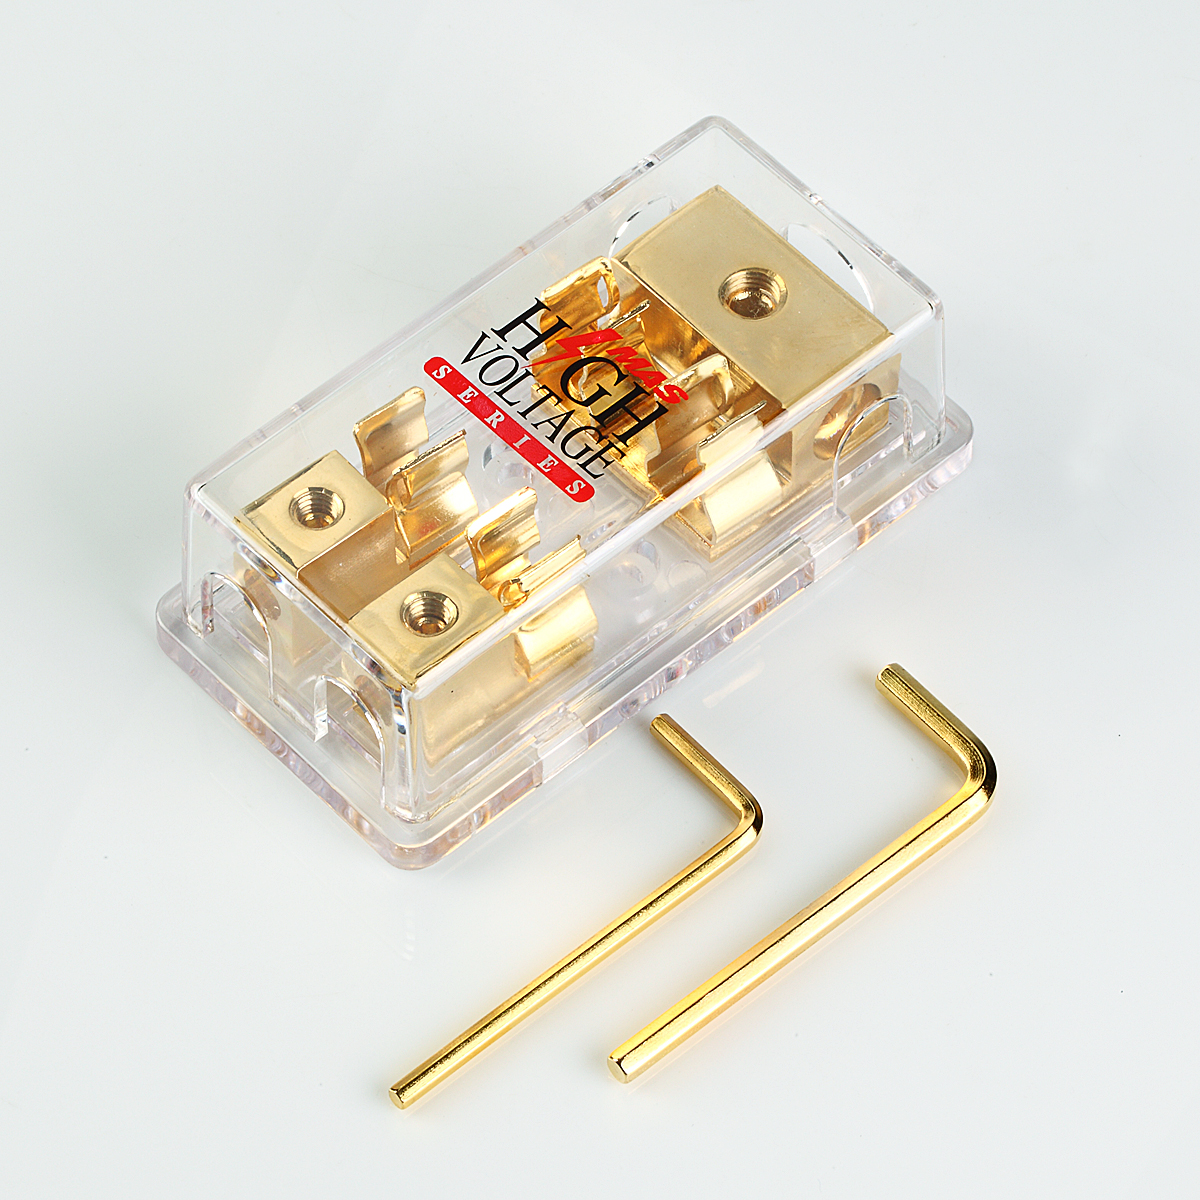 hight resolution of details about gold plated mongoose 2 gang agu fuse block three 4 gauge input two 8 ga output